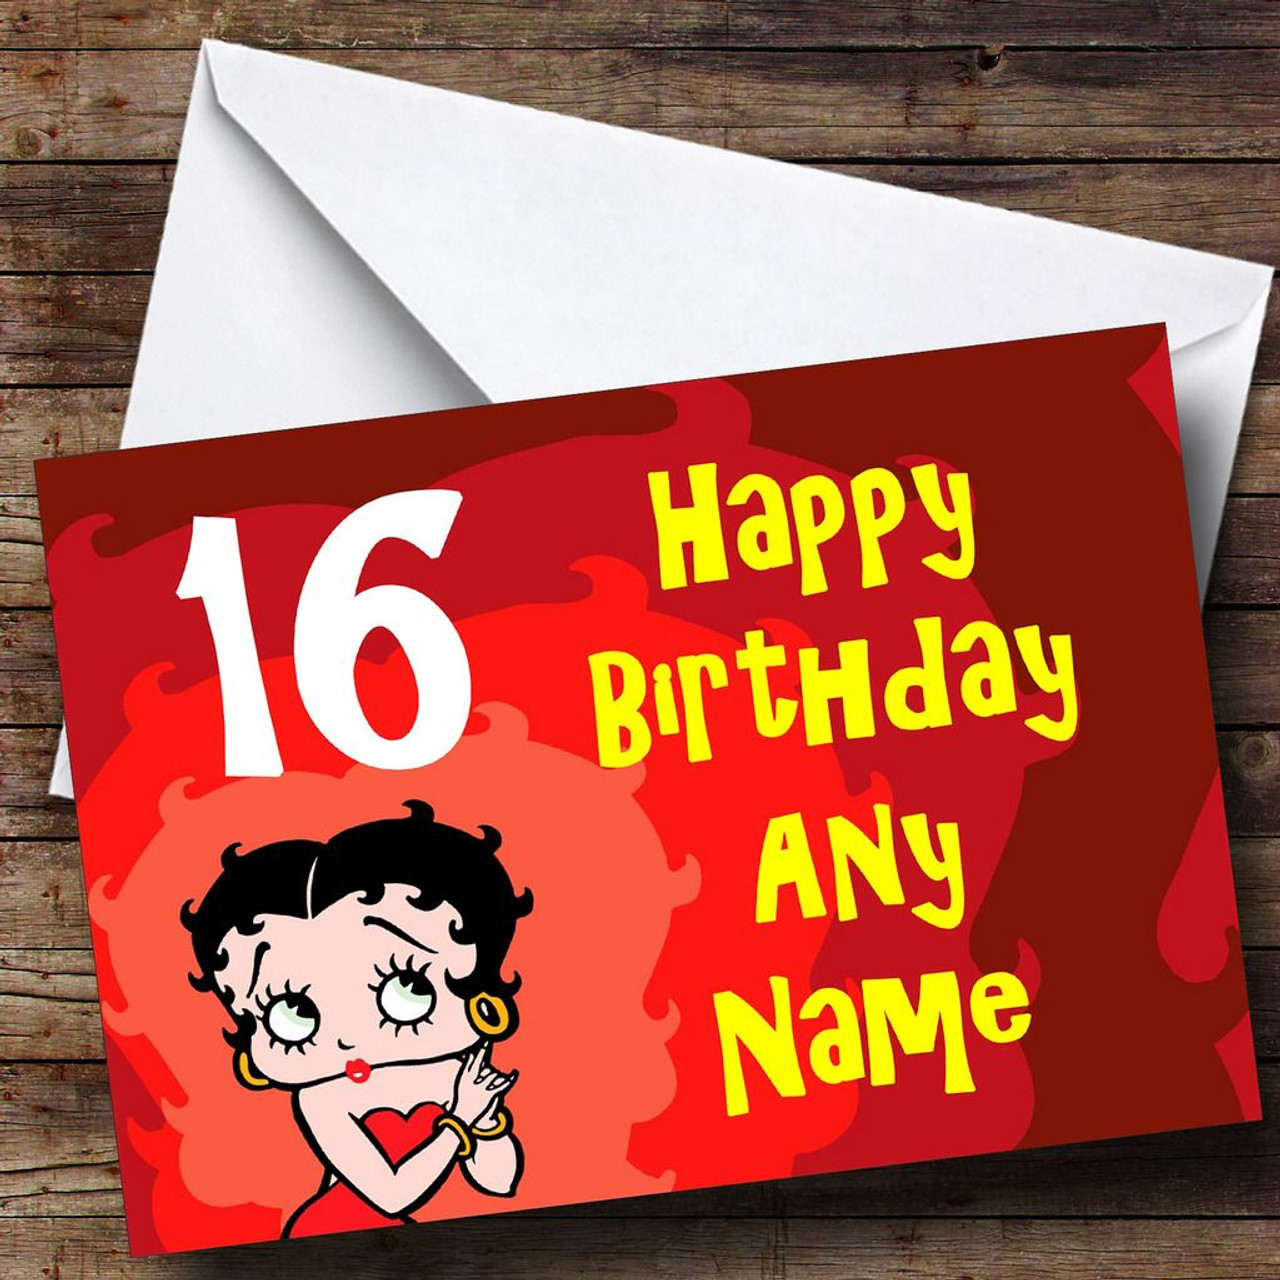 Red Betty Boop Personalised Birthday Card - The Card Zoo